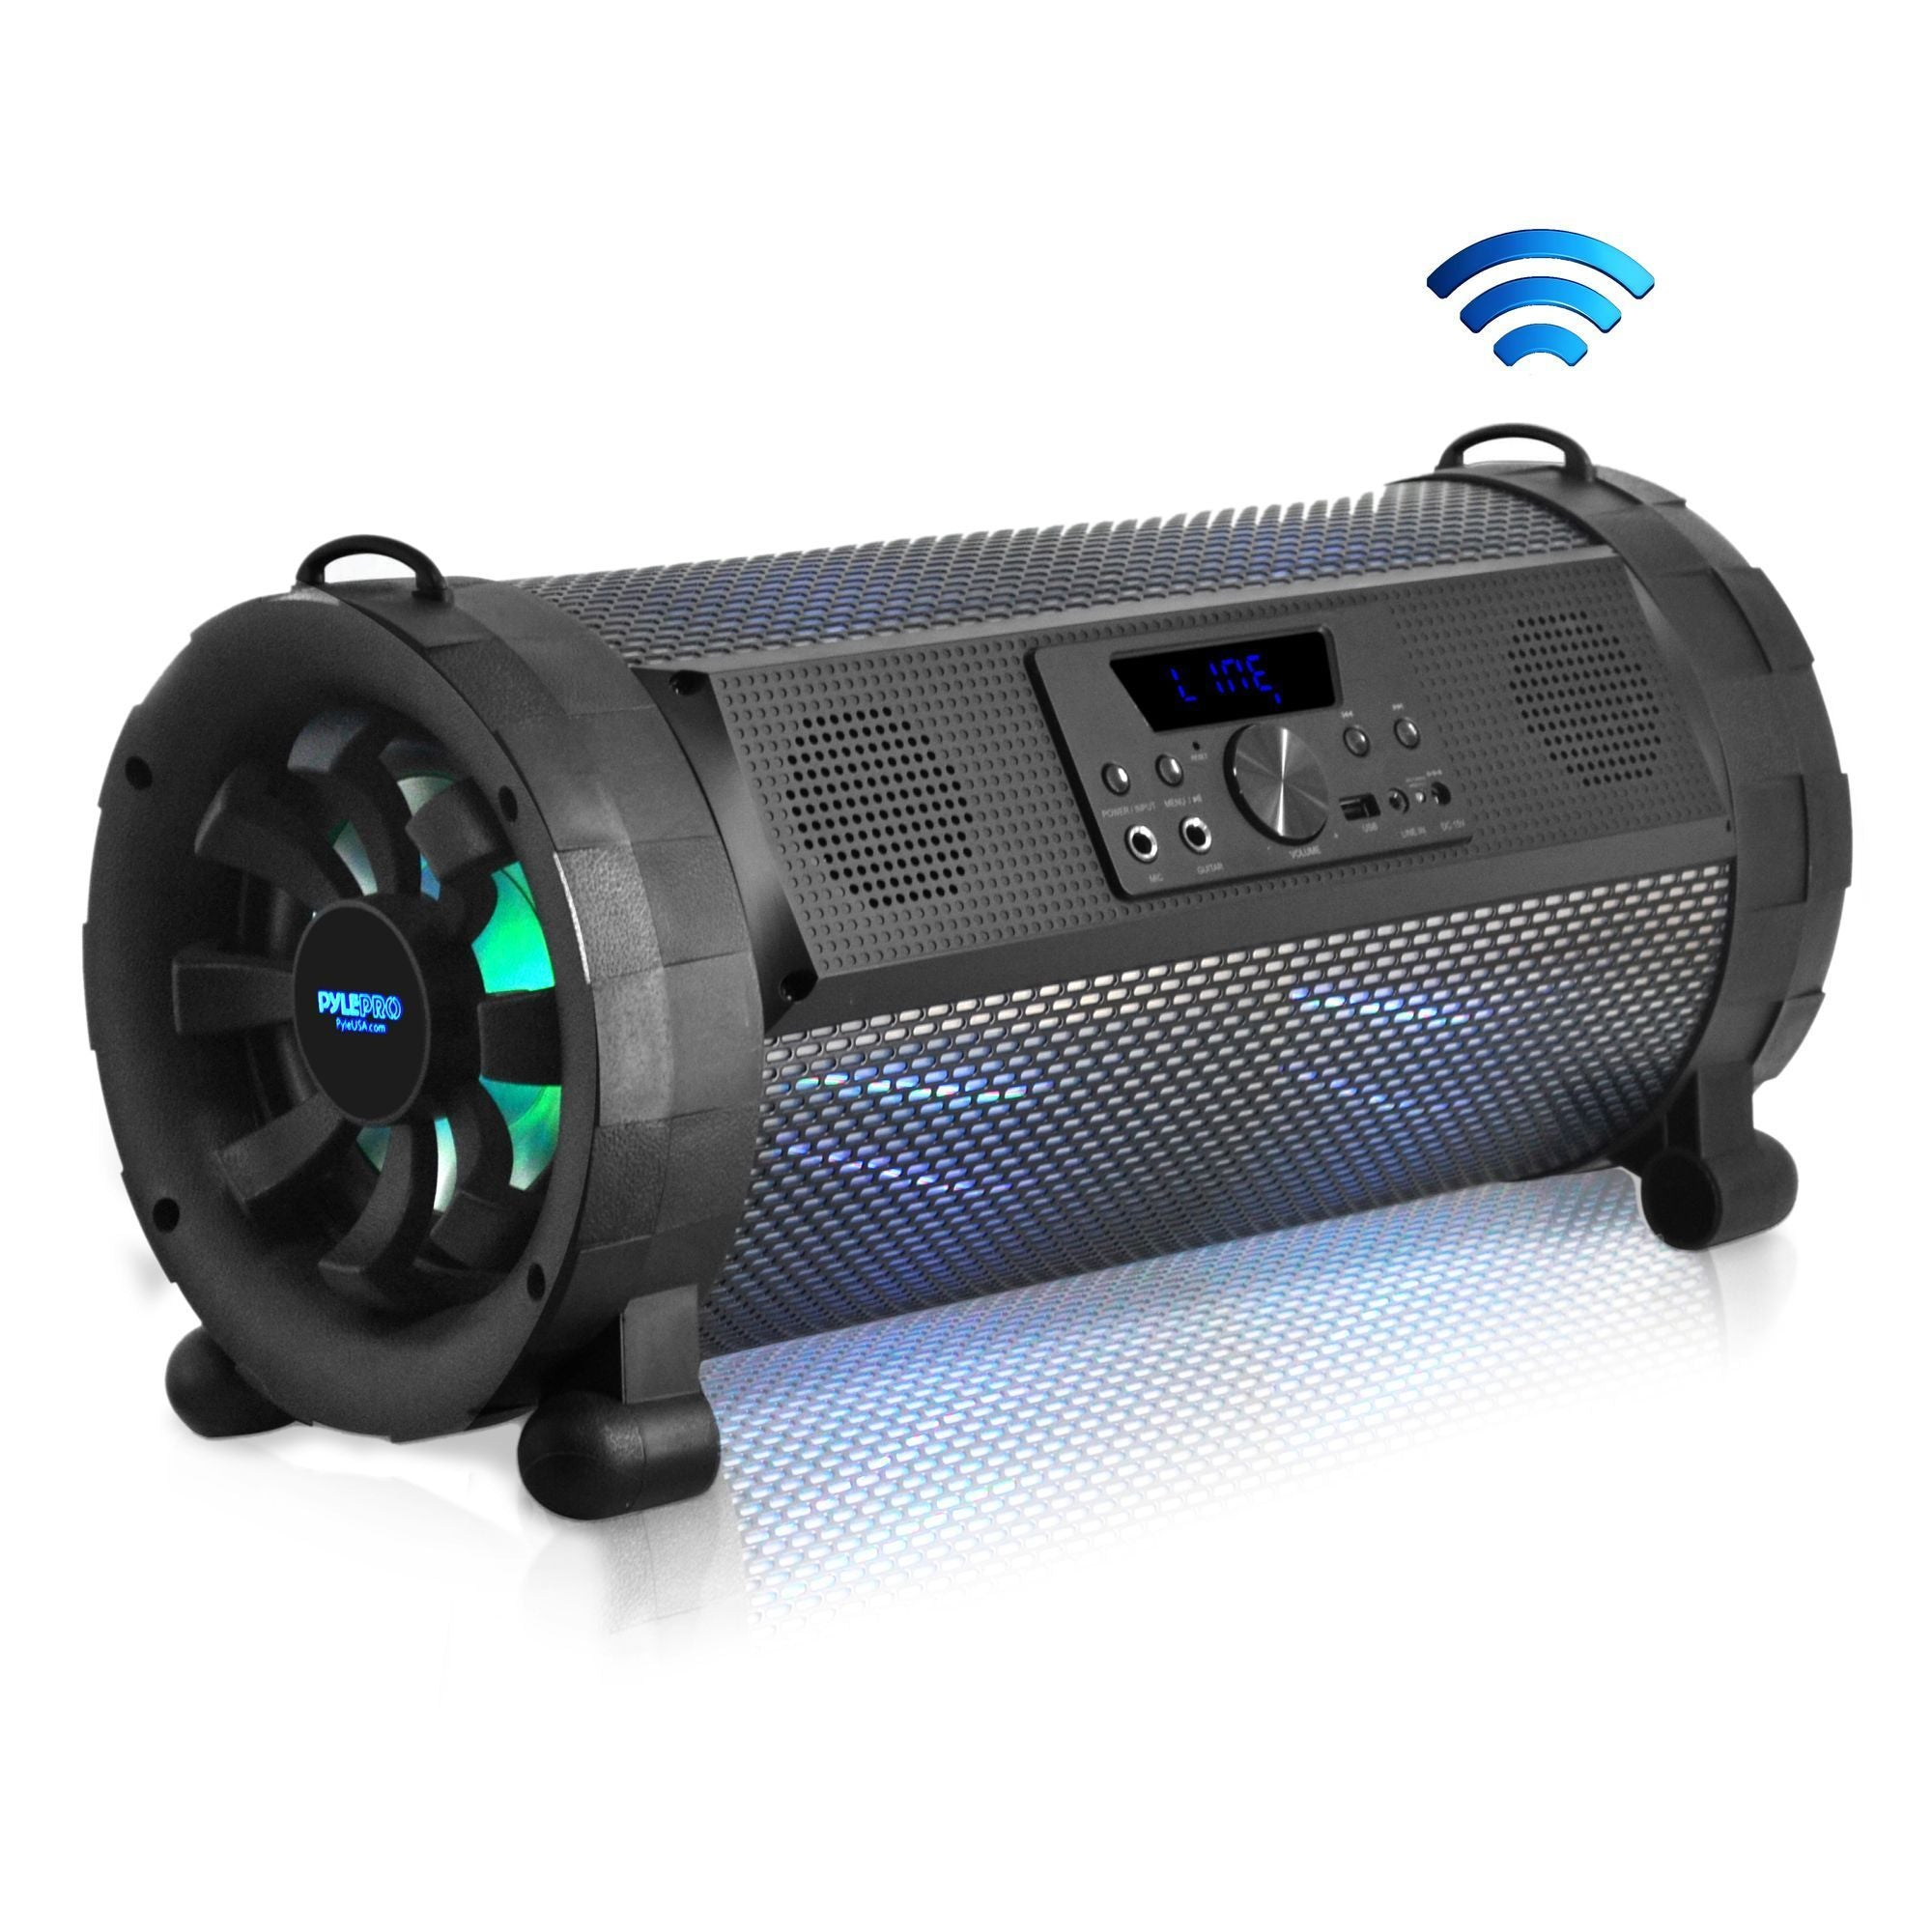 Pyle Street Blaster Bluetooth Boom Box Speaker System - Wireless & Portable Stereo Speaker with Built-in LED Lights, FM Radio (300 Watt) (PBMSPG190)